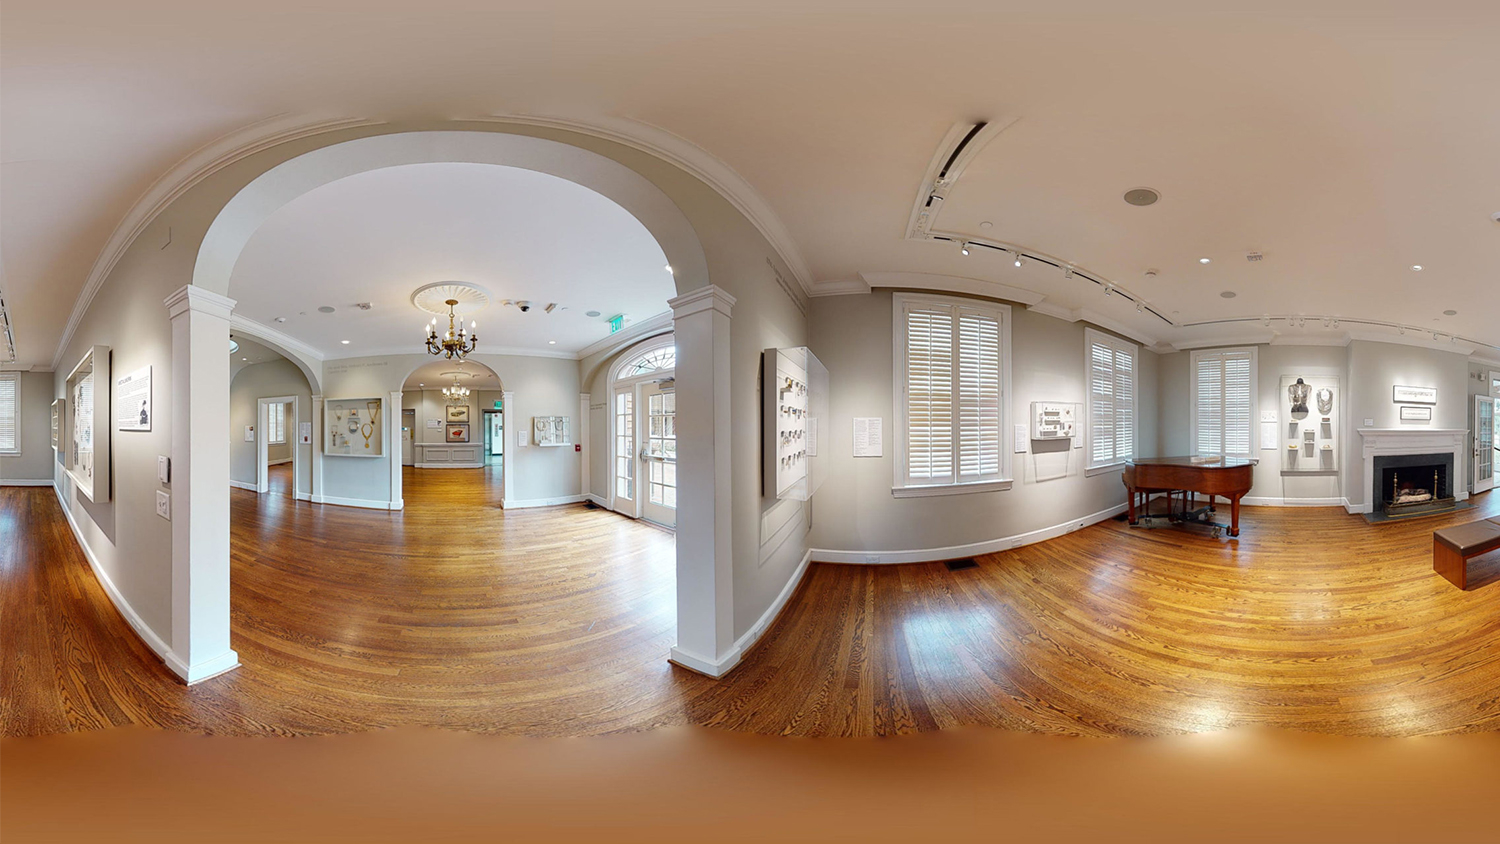 Screenshot of a virtual tour at the Gregg Museum